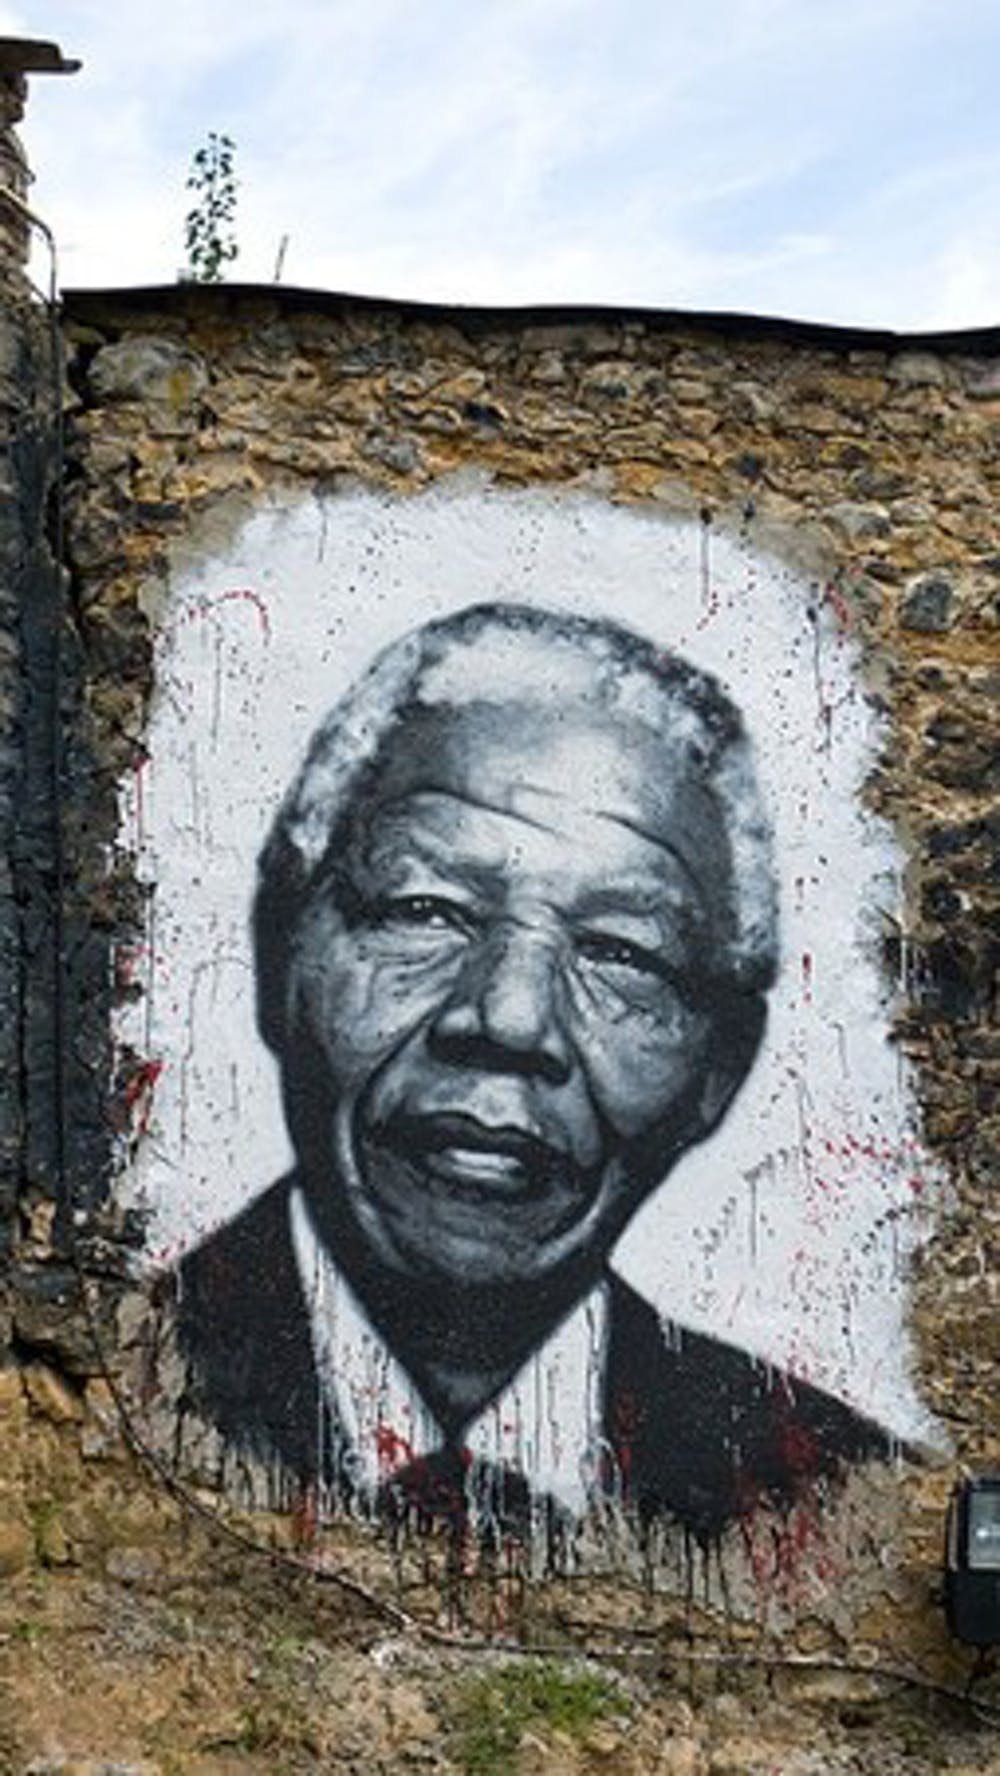 A professor remembers Nelson Mandela